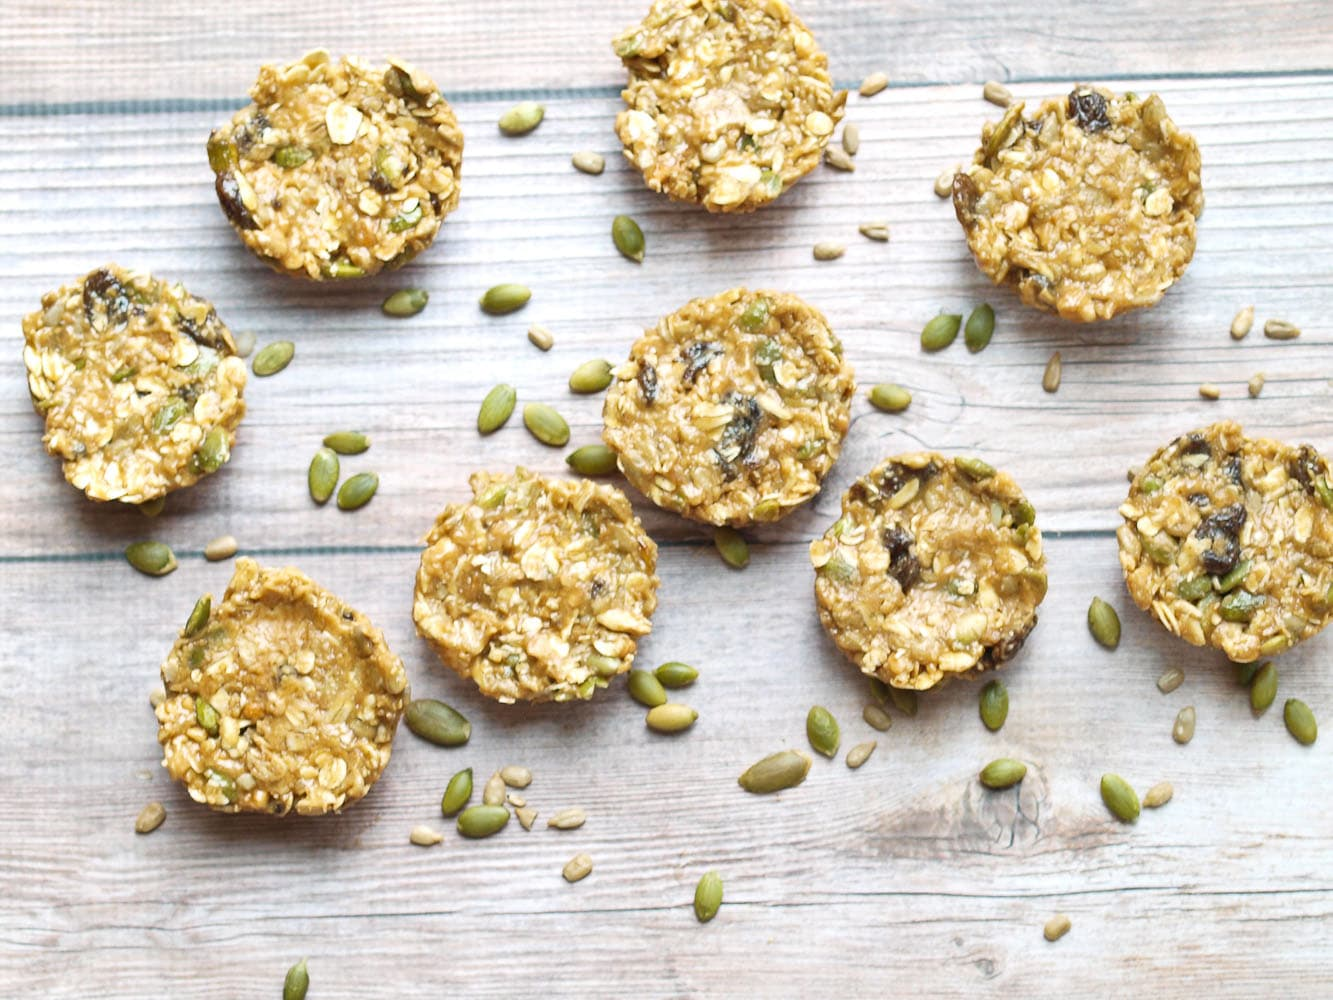 5 Minute No Bake Granola Bars. Full of healthy ingredients like seeds and dried fruit, this is a great healthy snack recipe. Gluten-free, almost vegan (adaptable--sub out the honey for brown rice syrup) and they taste like a treat! Ready in 5 minutes--just one bowl--such an easy recipe